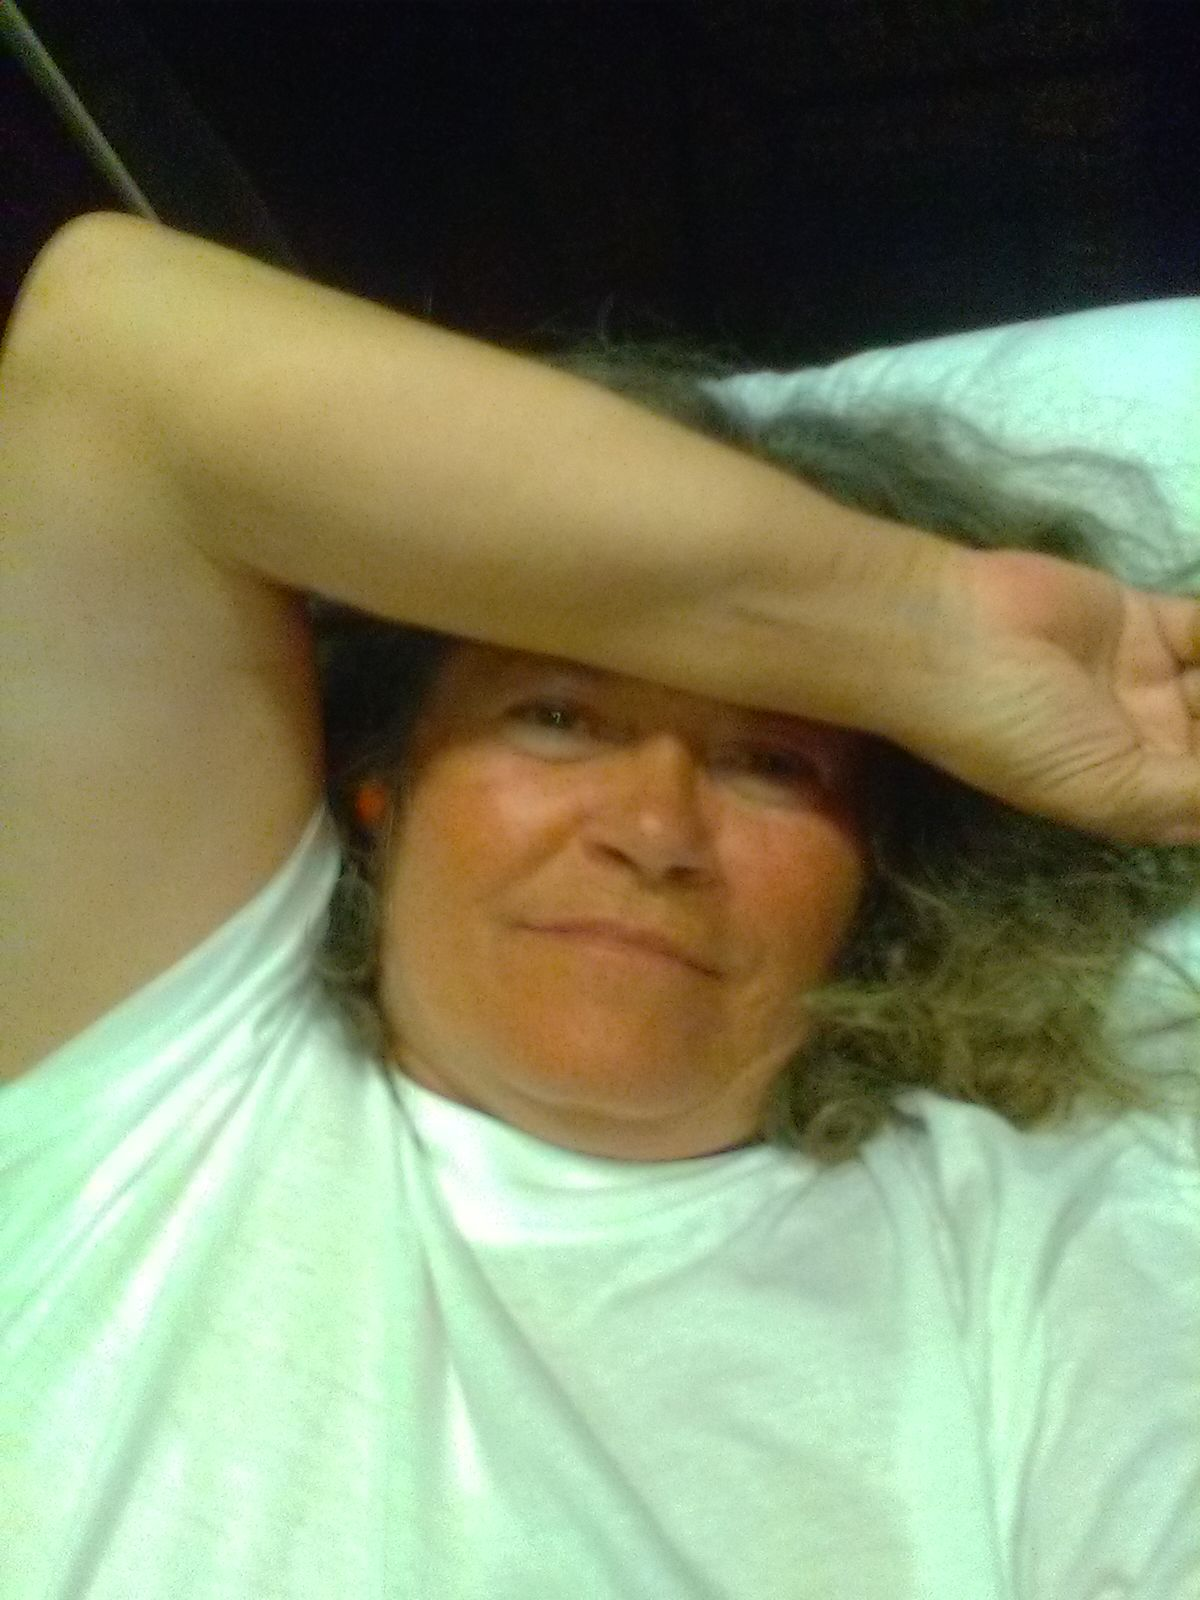 LuAnn Miller, a homeless client, takes a selfie while recovering from an illness in the care of Salt Lake County officials.